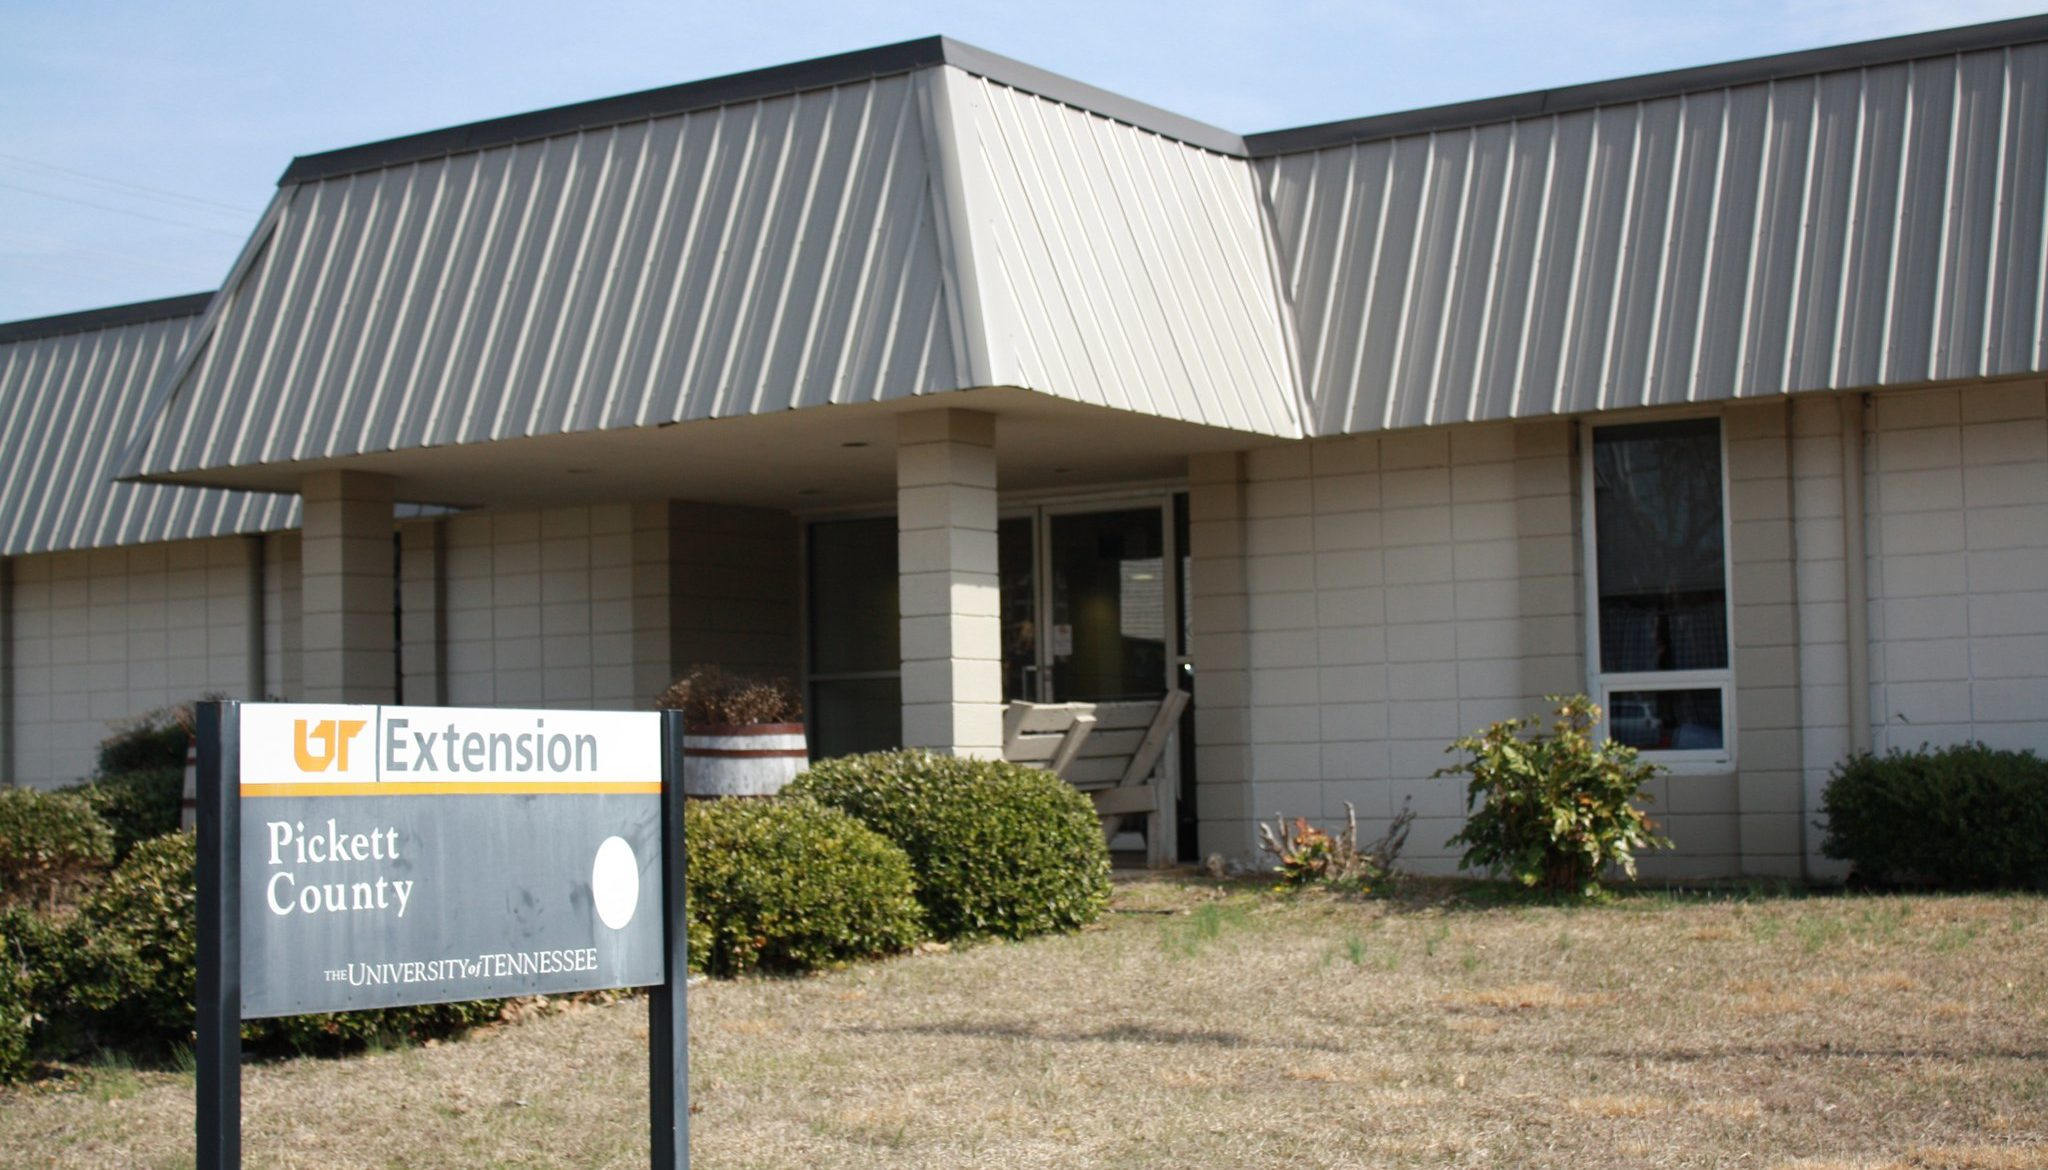 Picket County Extension Office